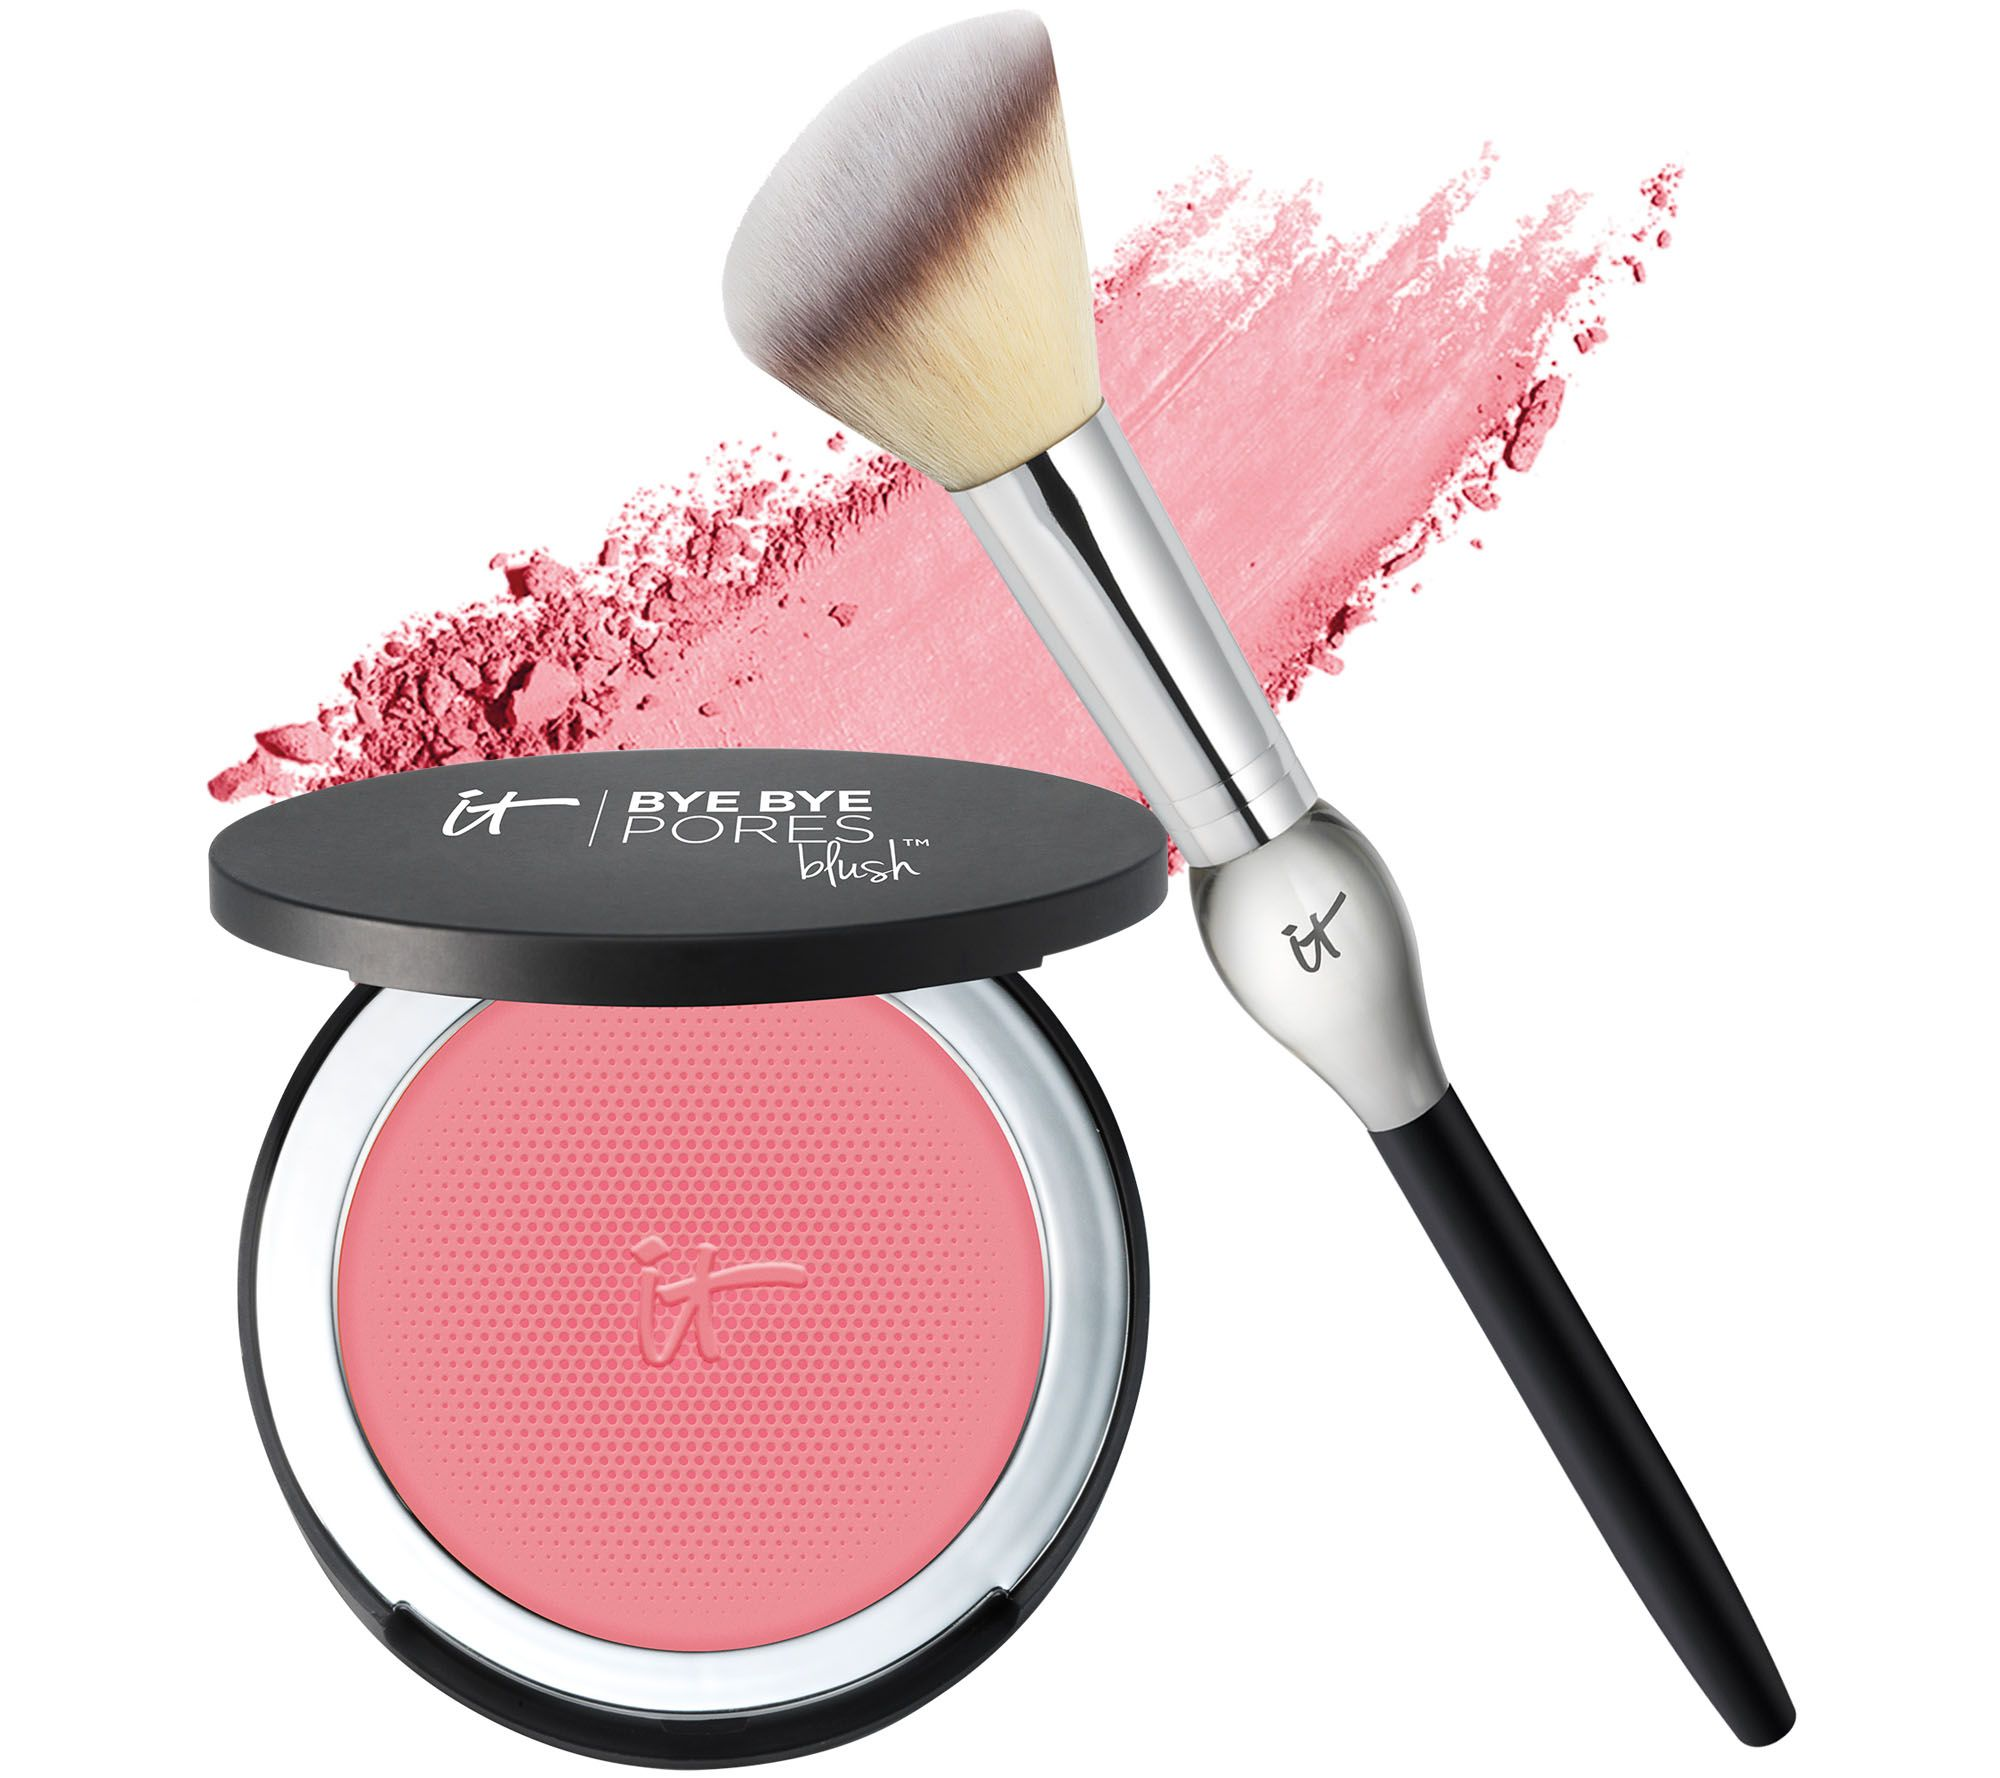 Online Branded Cosmetics Stores in India